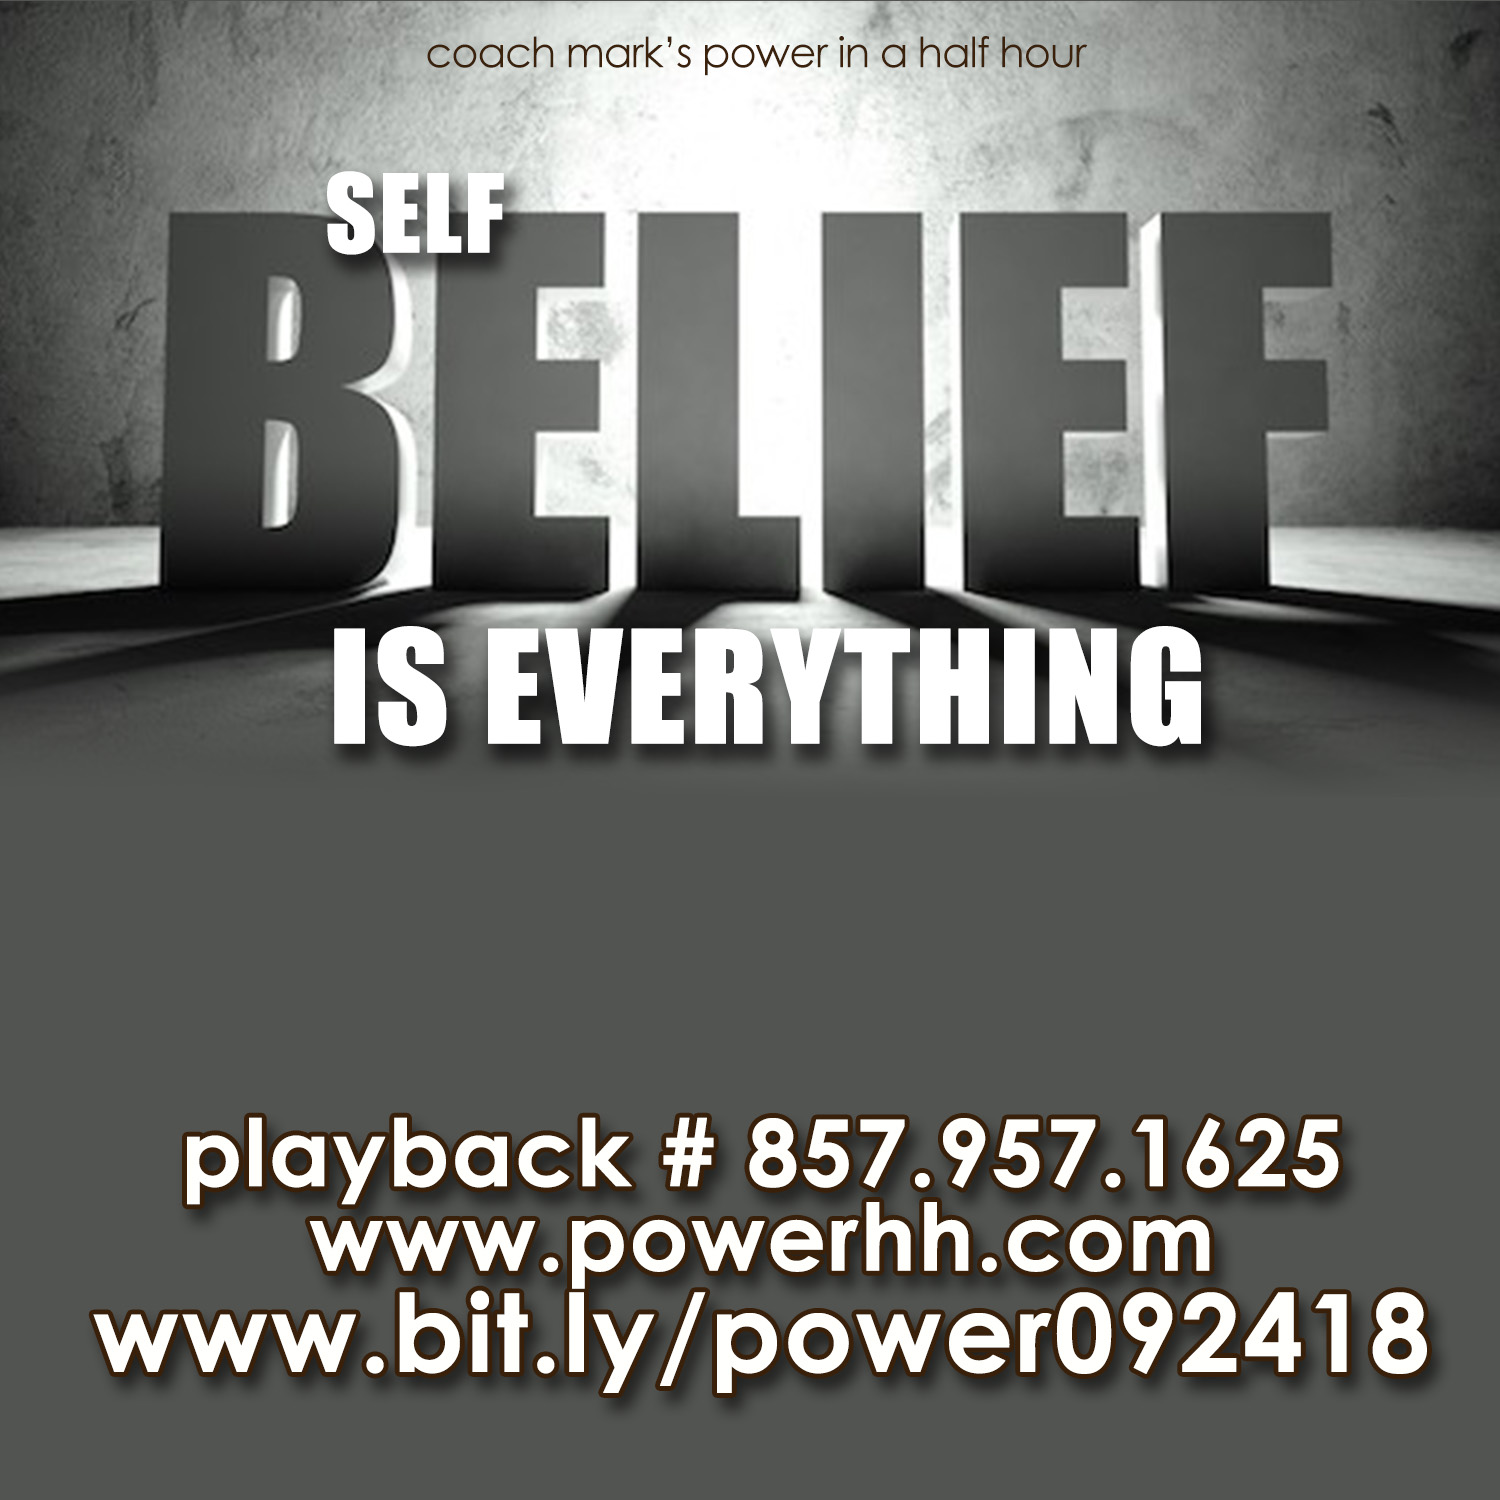 power replay 092418